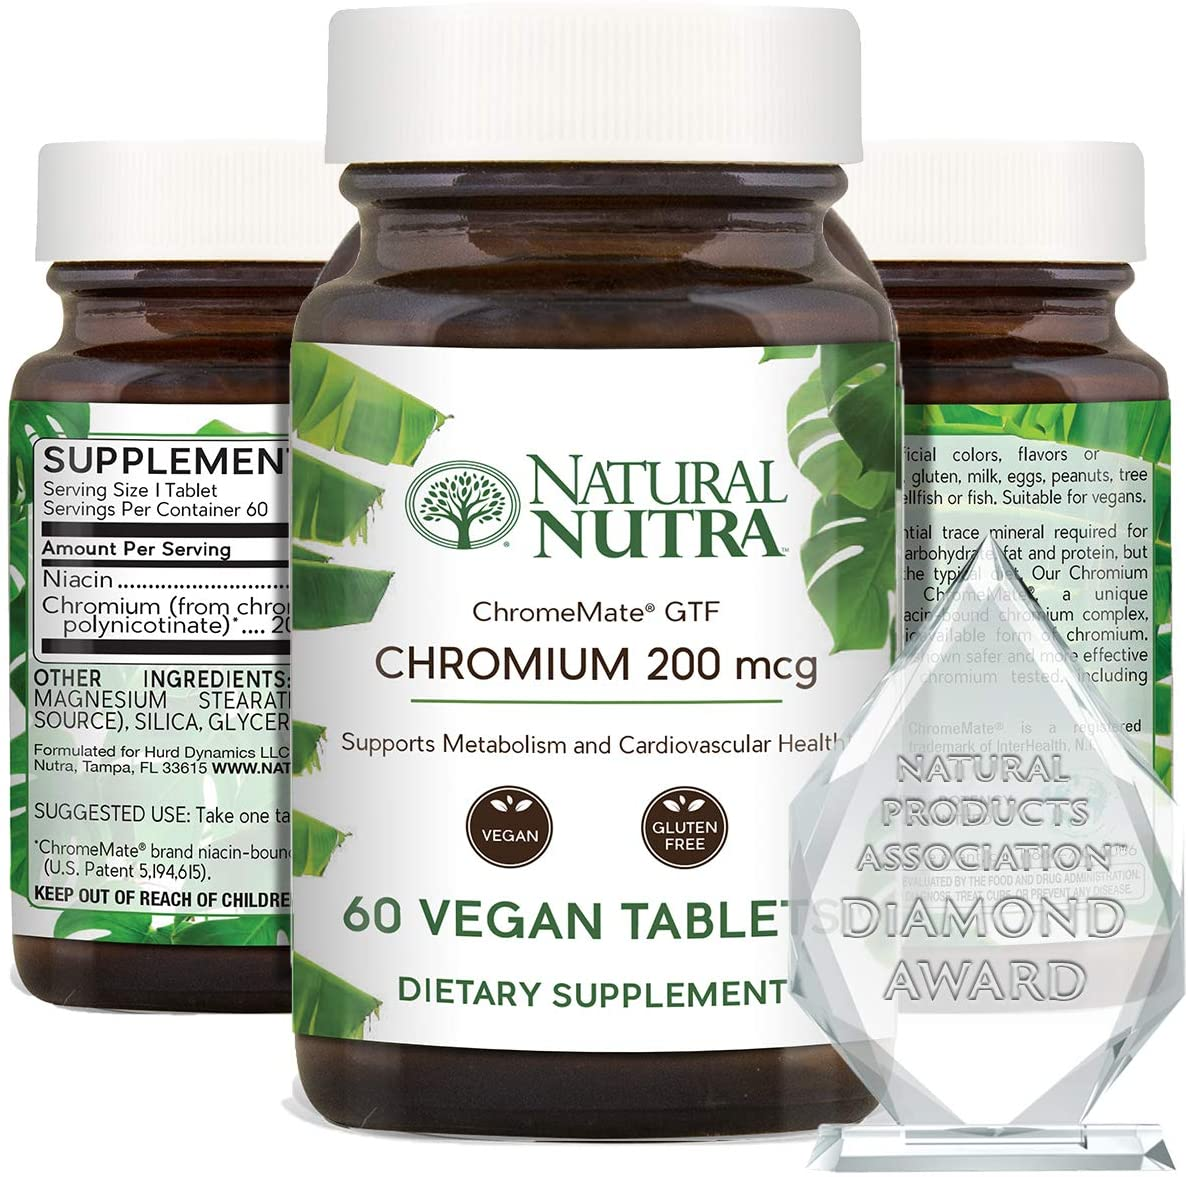 Natural Nutra GTF Chromium Polynicotinate with ChromeMate®, Niacin Bound, Diabetic, Blood Sugar, Weight Loss Vitamin, Supports Metabolism and Cardiovascular Health, 200 mcg, 60 Vegan Tablets